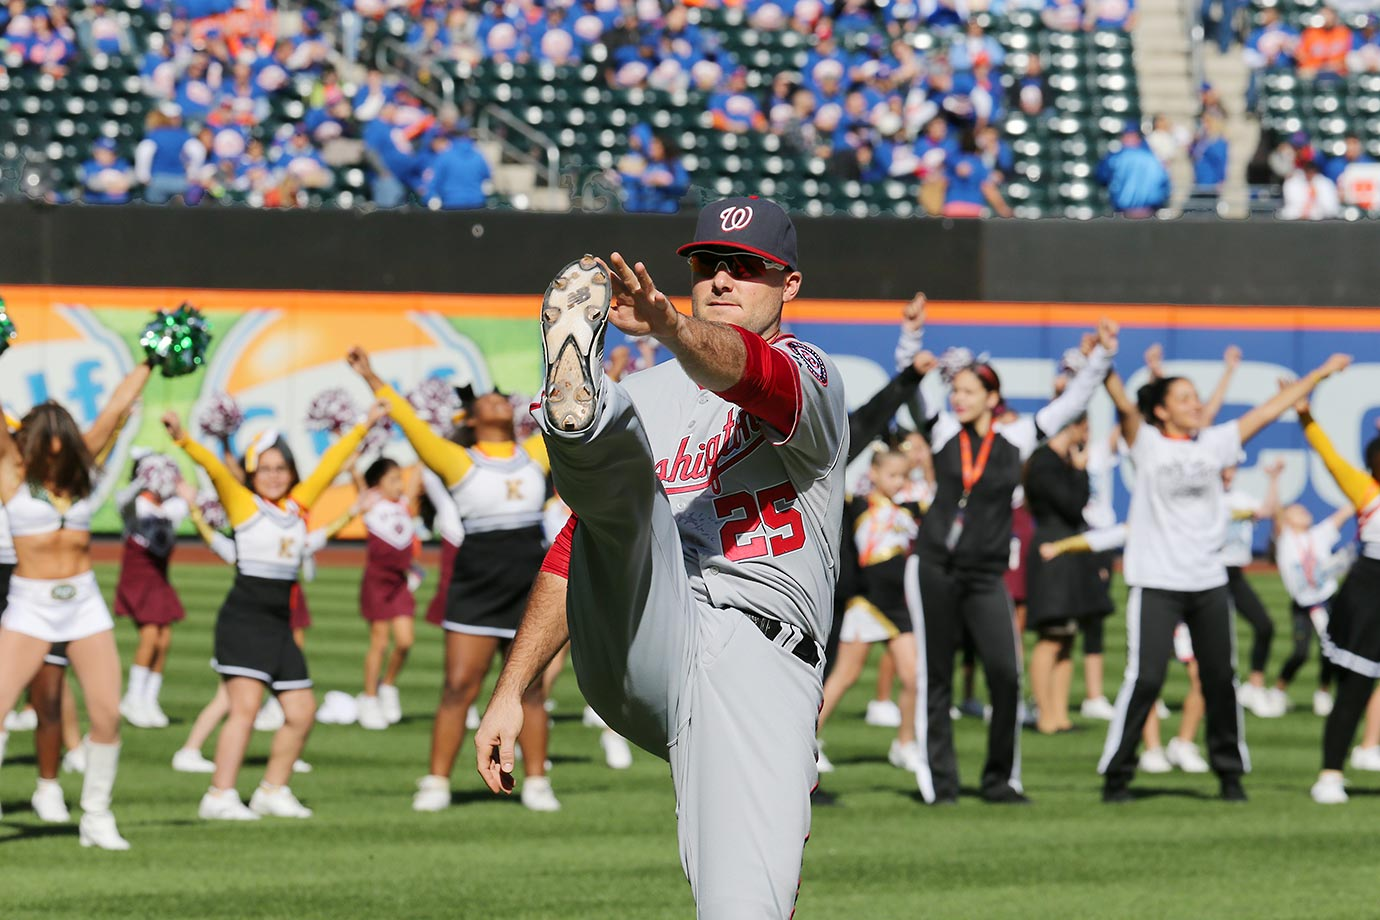 Clint Robinson of the Washington Nationals does a little pre-game stretching before a game.  The New York Jets Flight Crew held a special event with young cheerleaders from the Metro area at Citi Field.